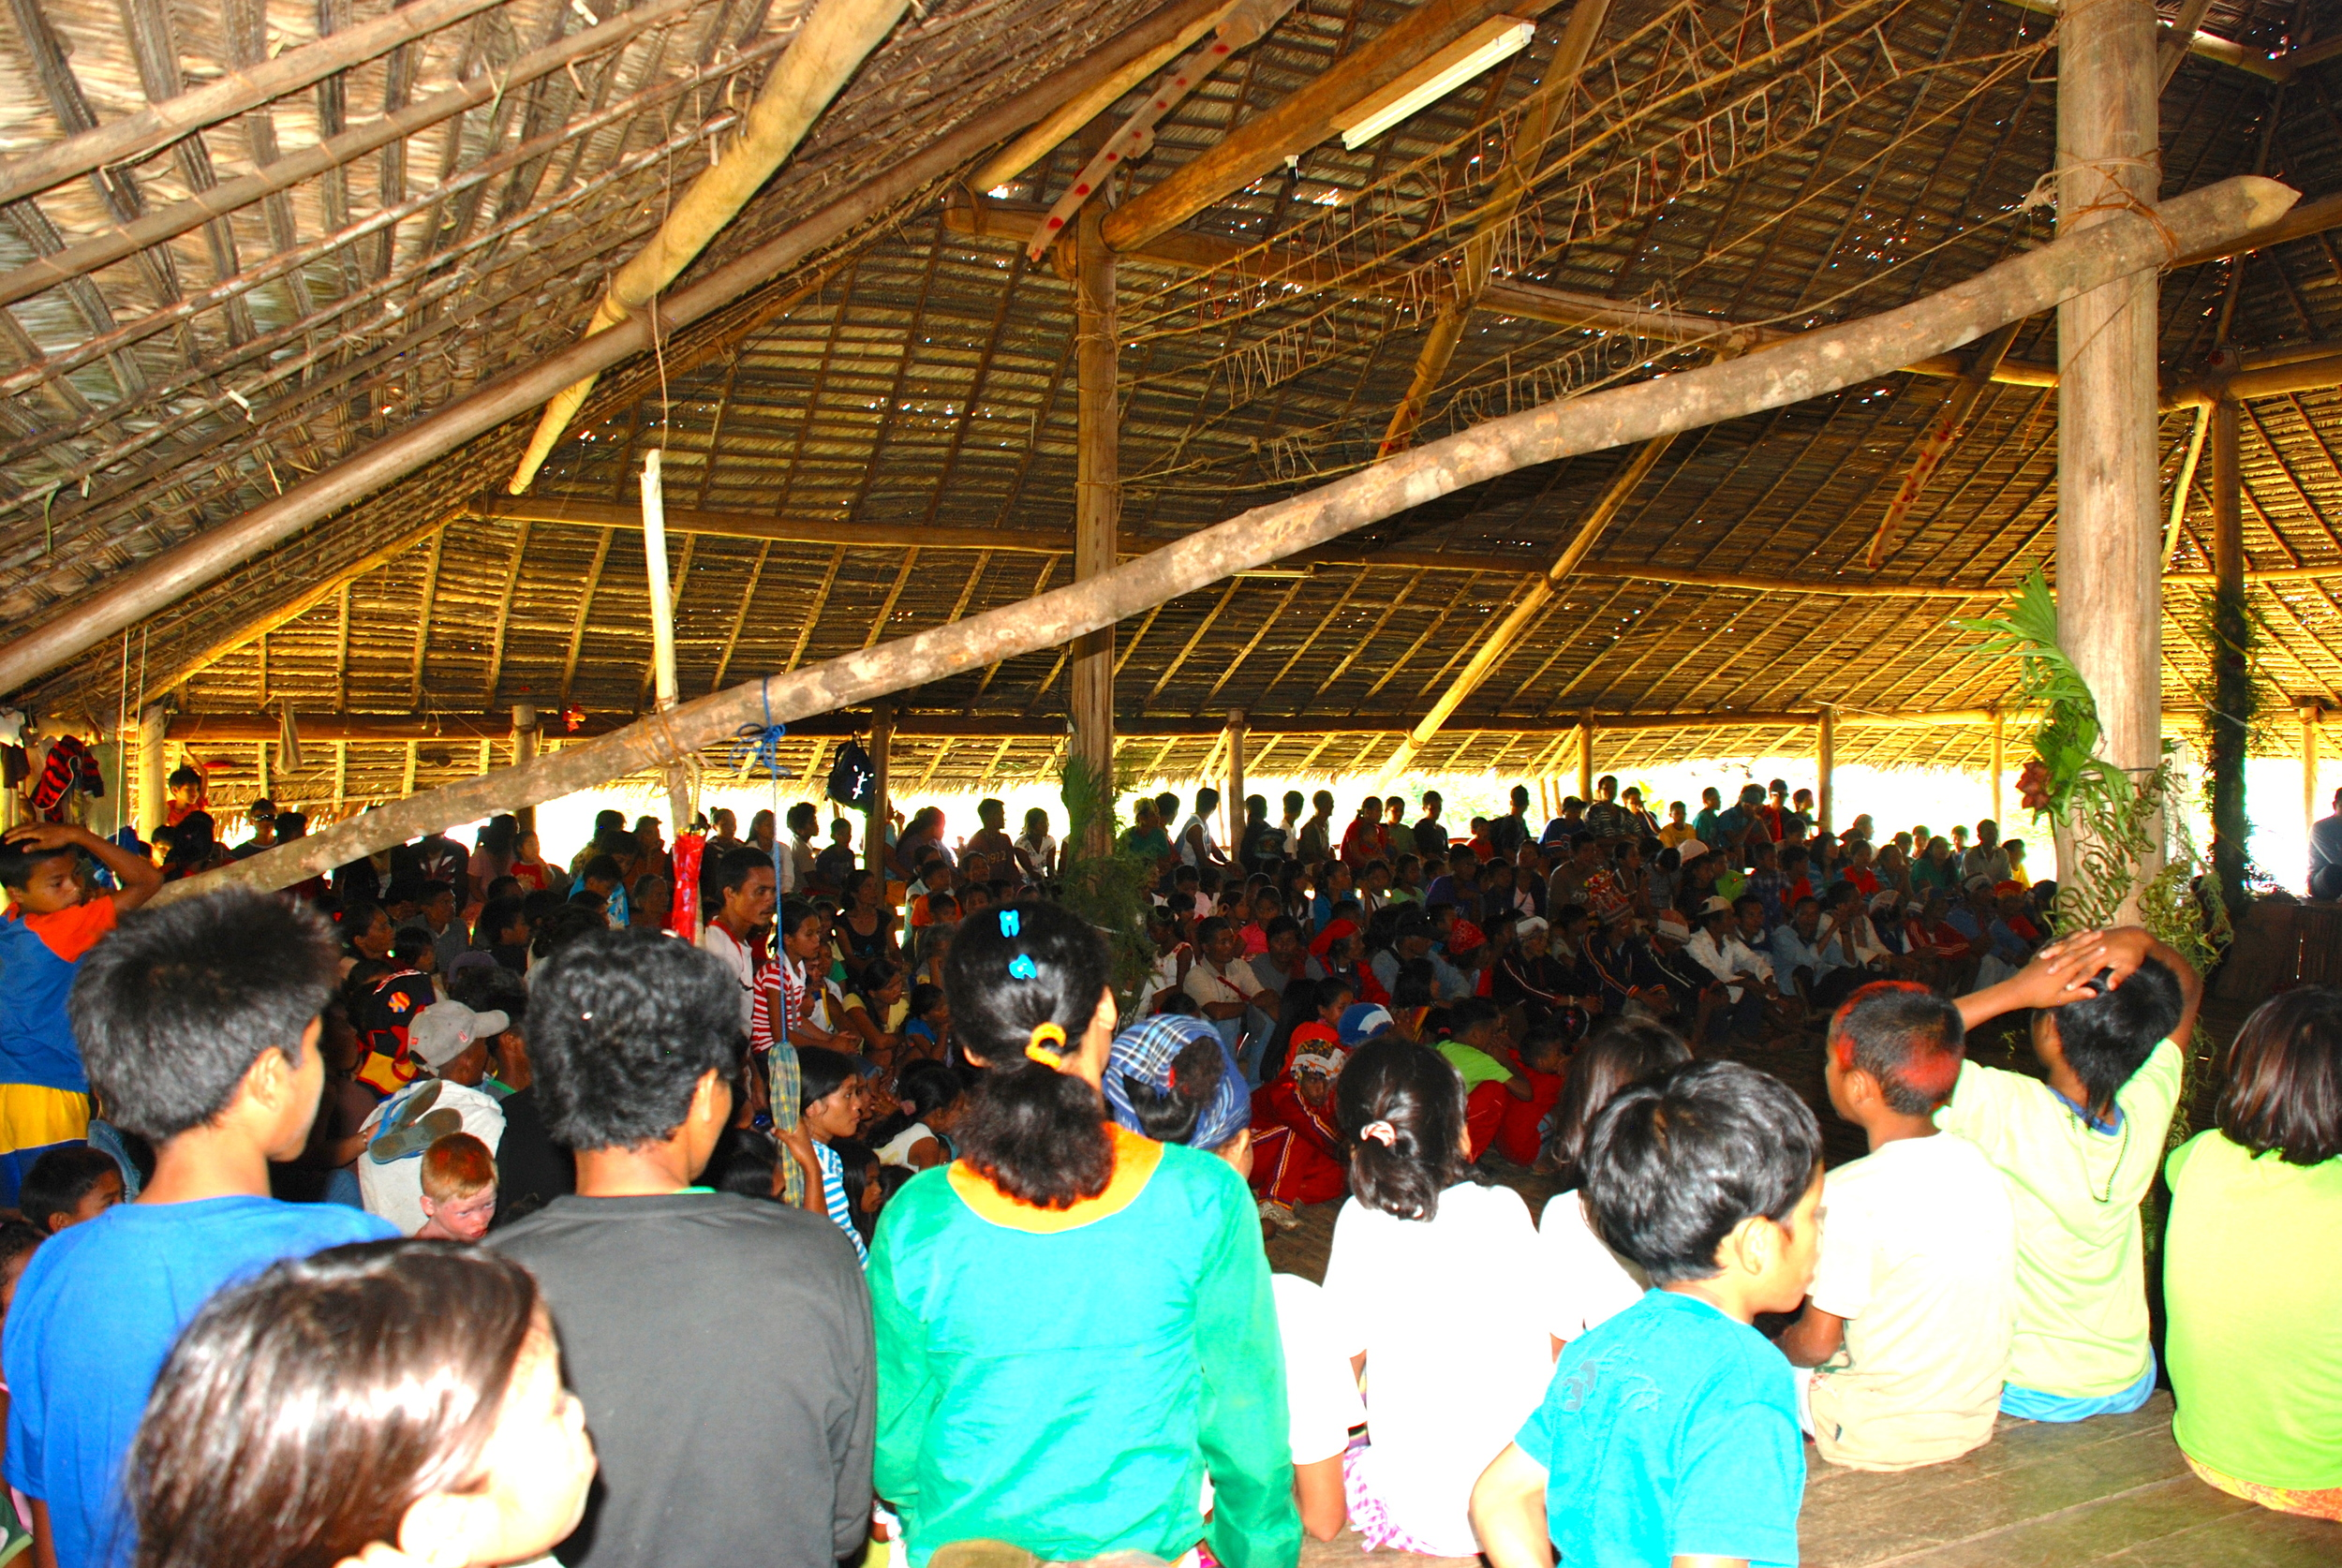 Tribal peace and reconciliation gathering